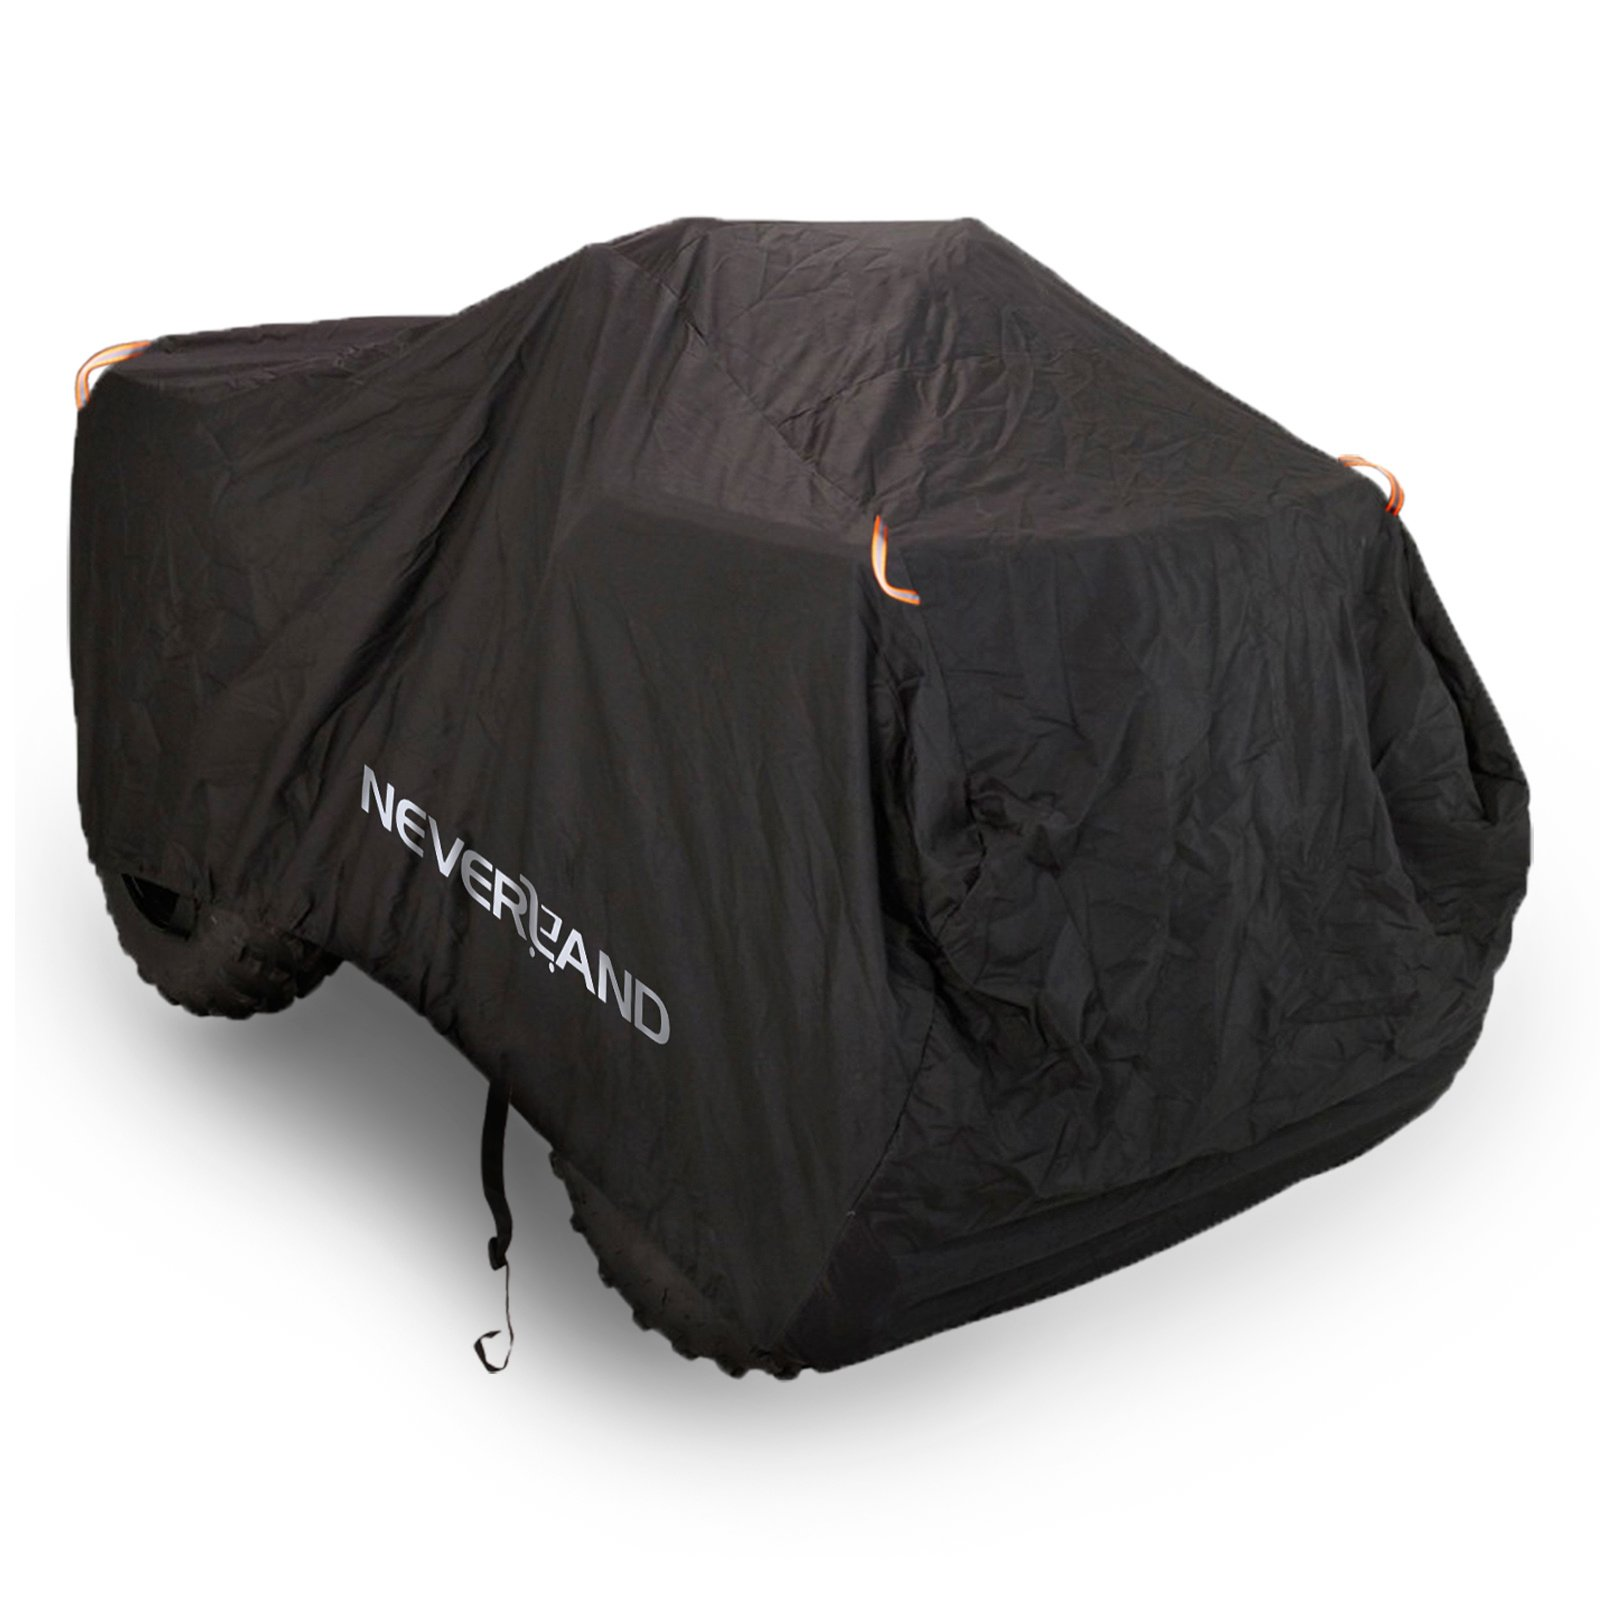 NEVERLAND Custom Waterproof ATV Cover Universal fit Polaris Sportsman Honda Foreman Yamaha Grizzly Kawasaki Bayou Can-Am Suzuki 78.74'' x 37.4'' x 41.73''(US STOCK)